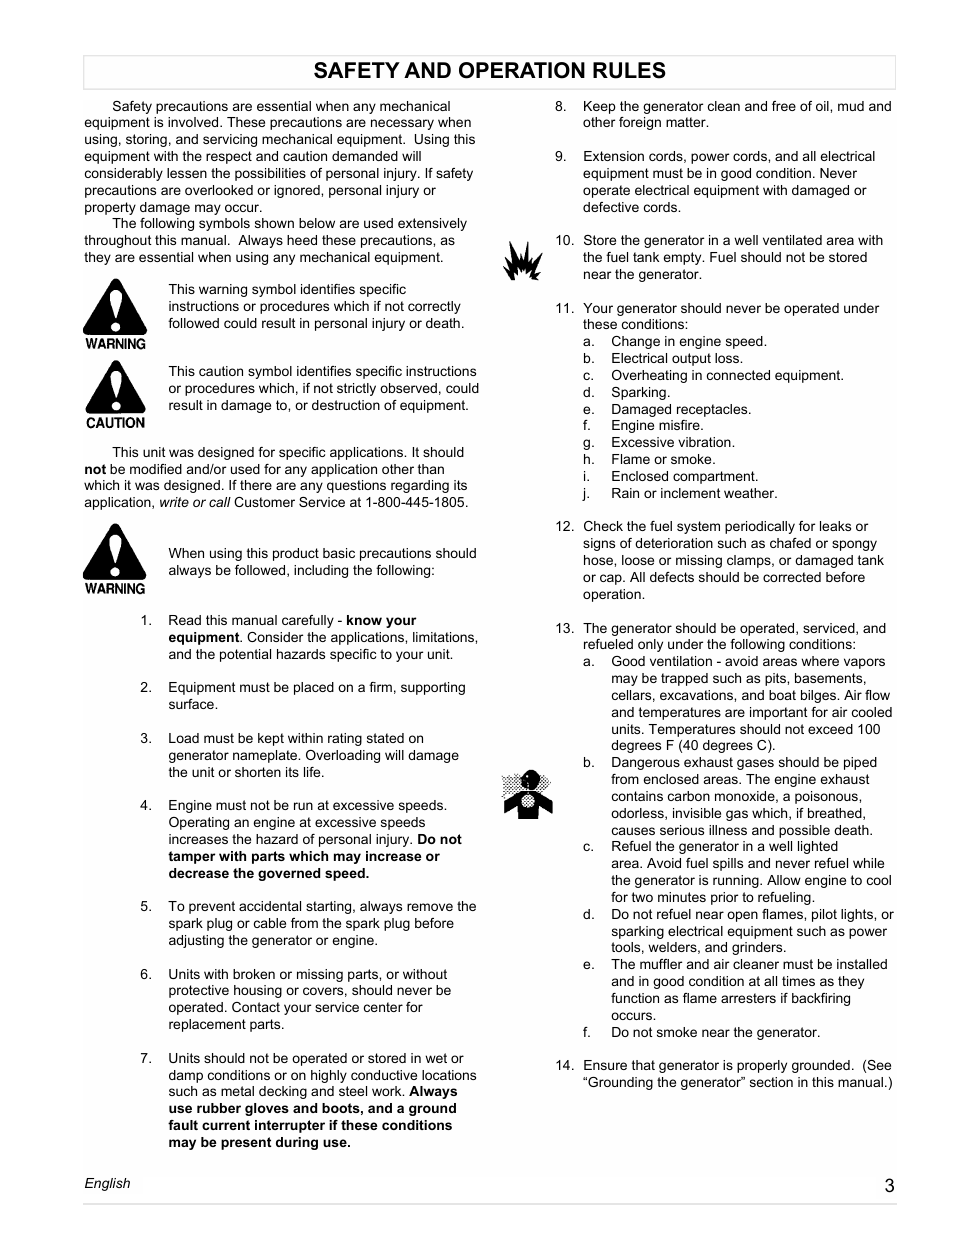 Safety and operation rules | Powermate PM0558023.01 User Manual | Page 3 /  42